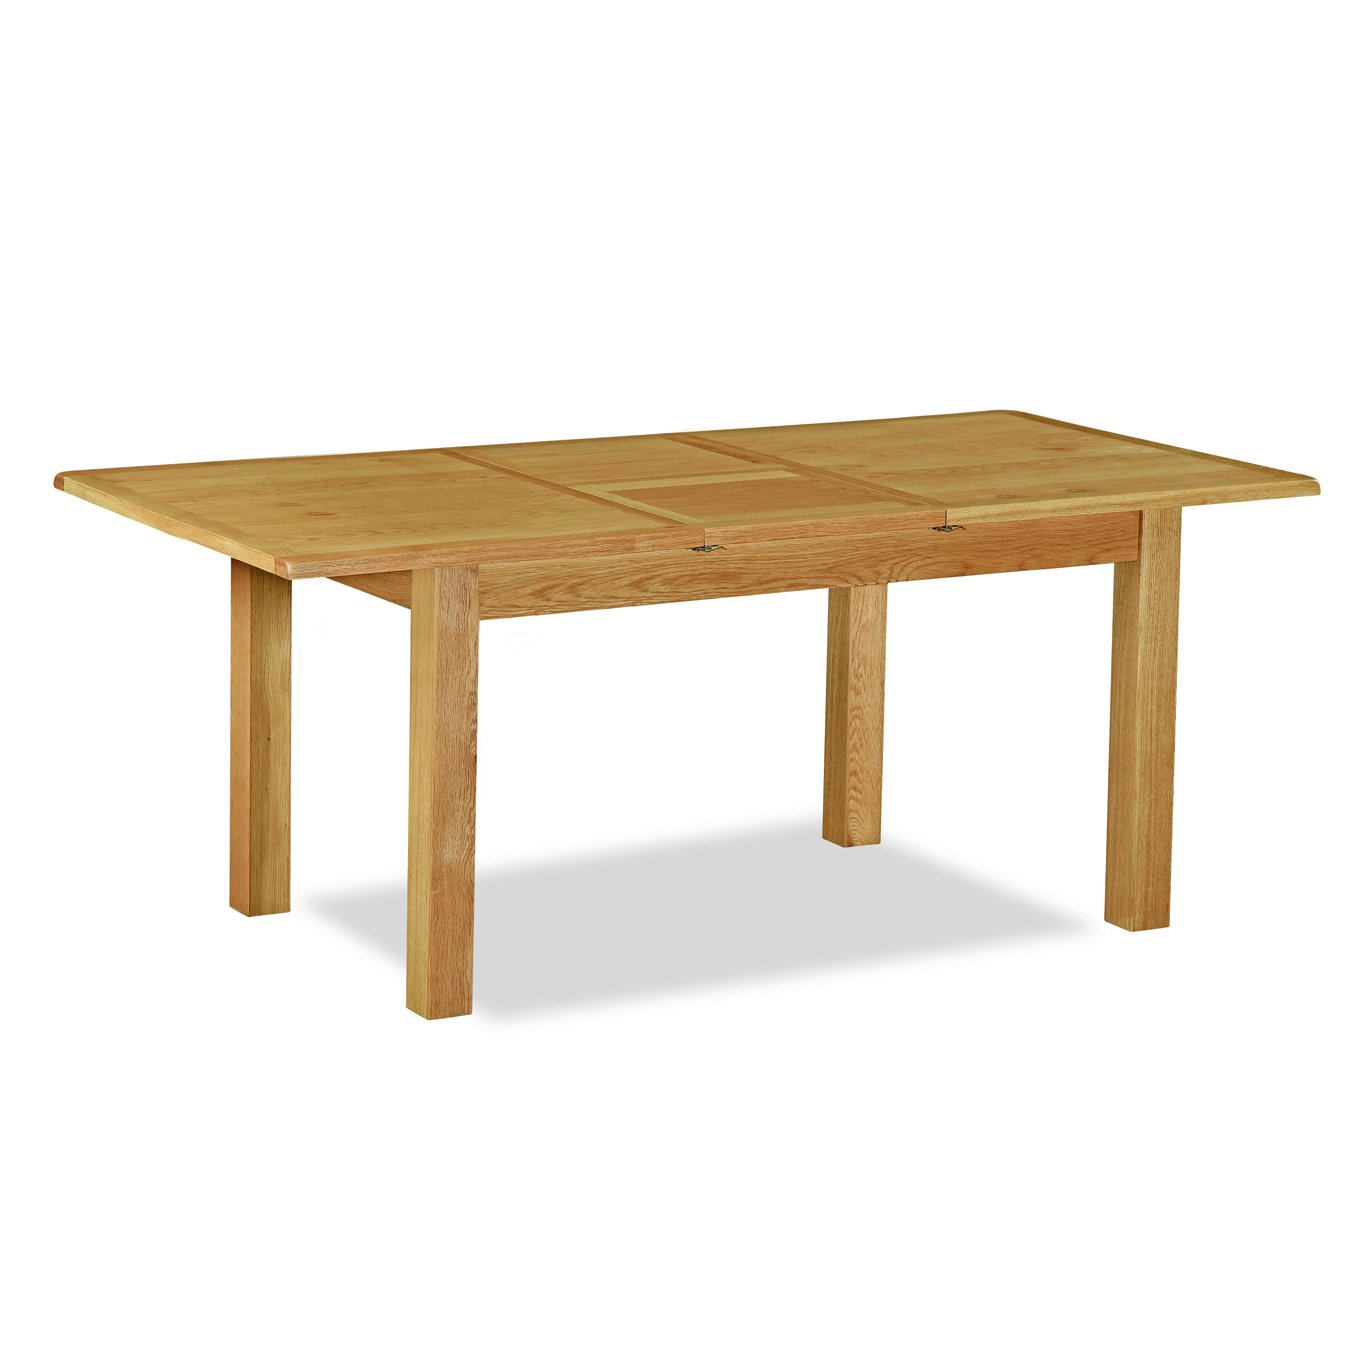 Bergerac petite small extendable table desire furnishings for Petite table extensible